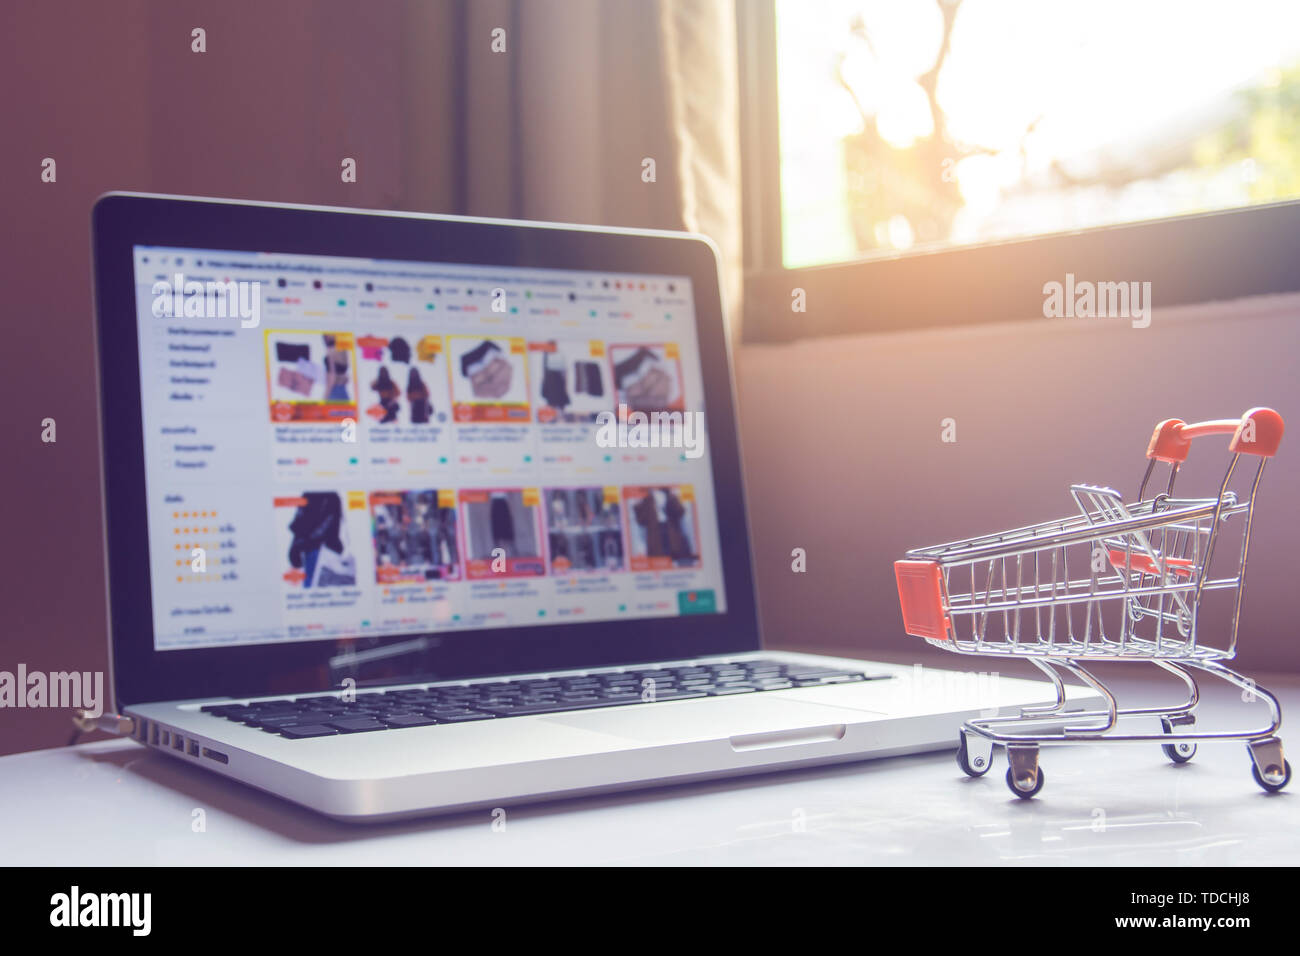 Shopping online concept - Empty shopping cart or trolley and laptop on white table. Shopping service on The online web. with copy space Stock Photo